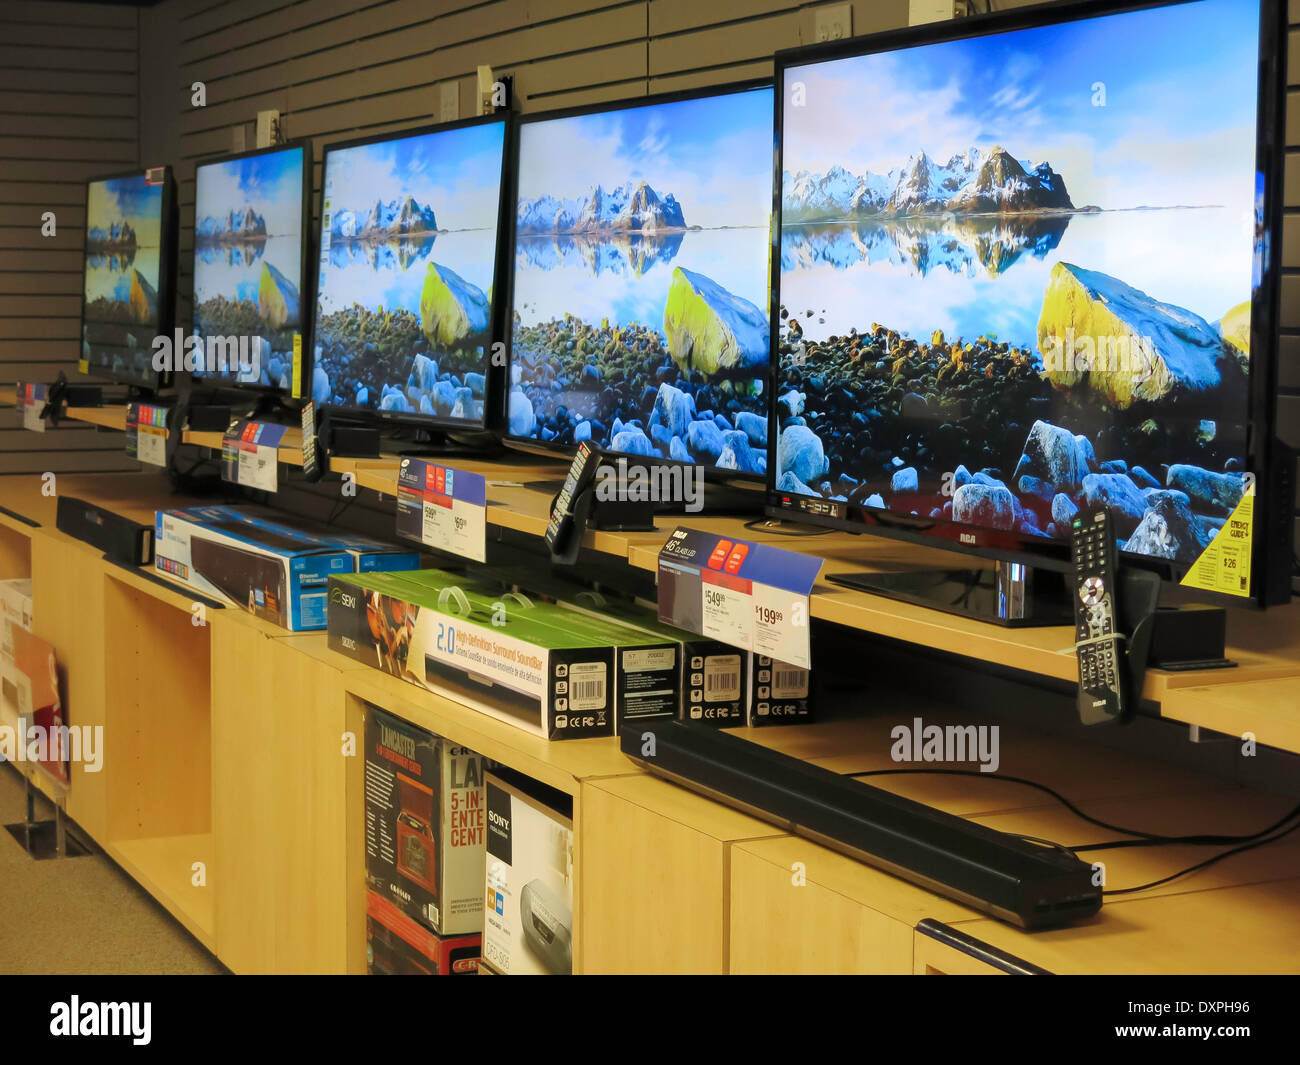 Save on Costco TVs with the latest deals at dealnews. Our editors search hundreds of online sales to bring you the best TV deals and discounts.